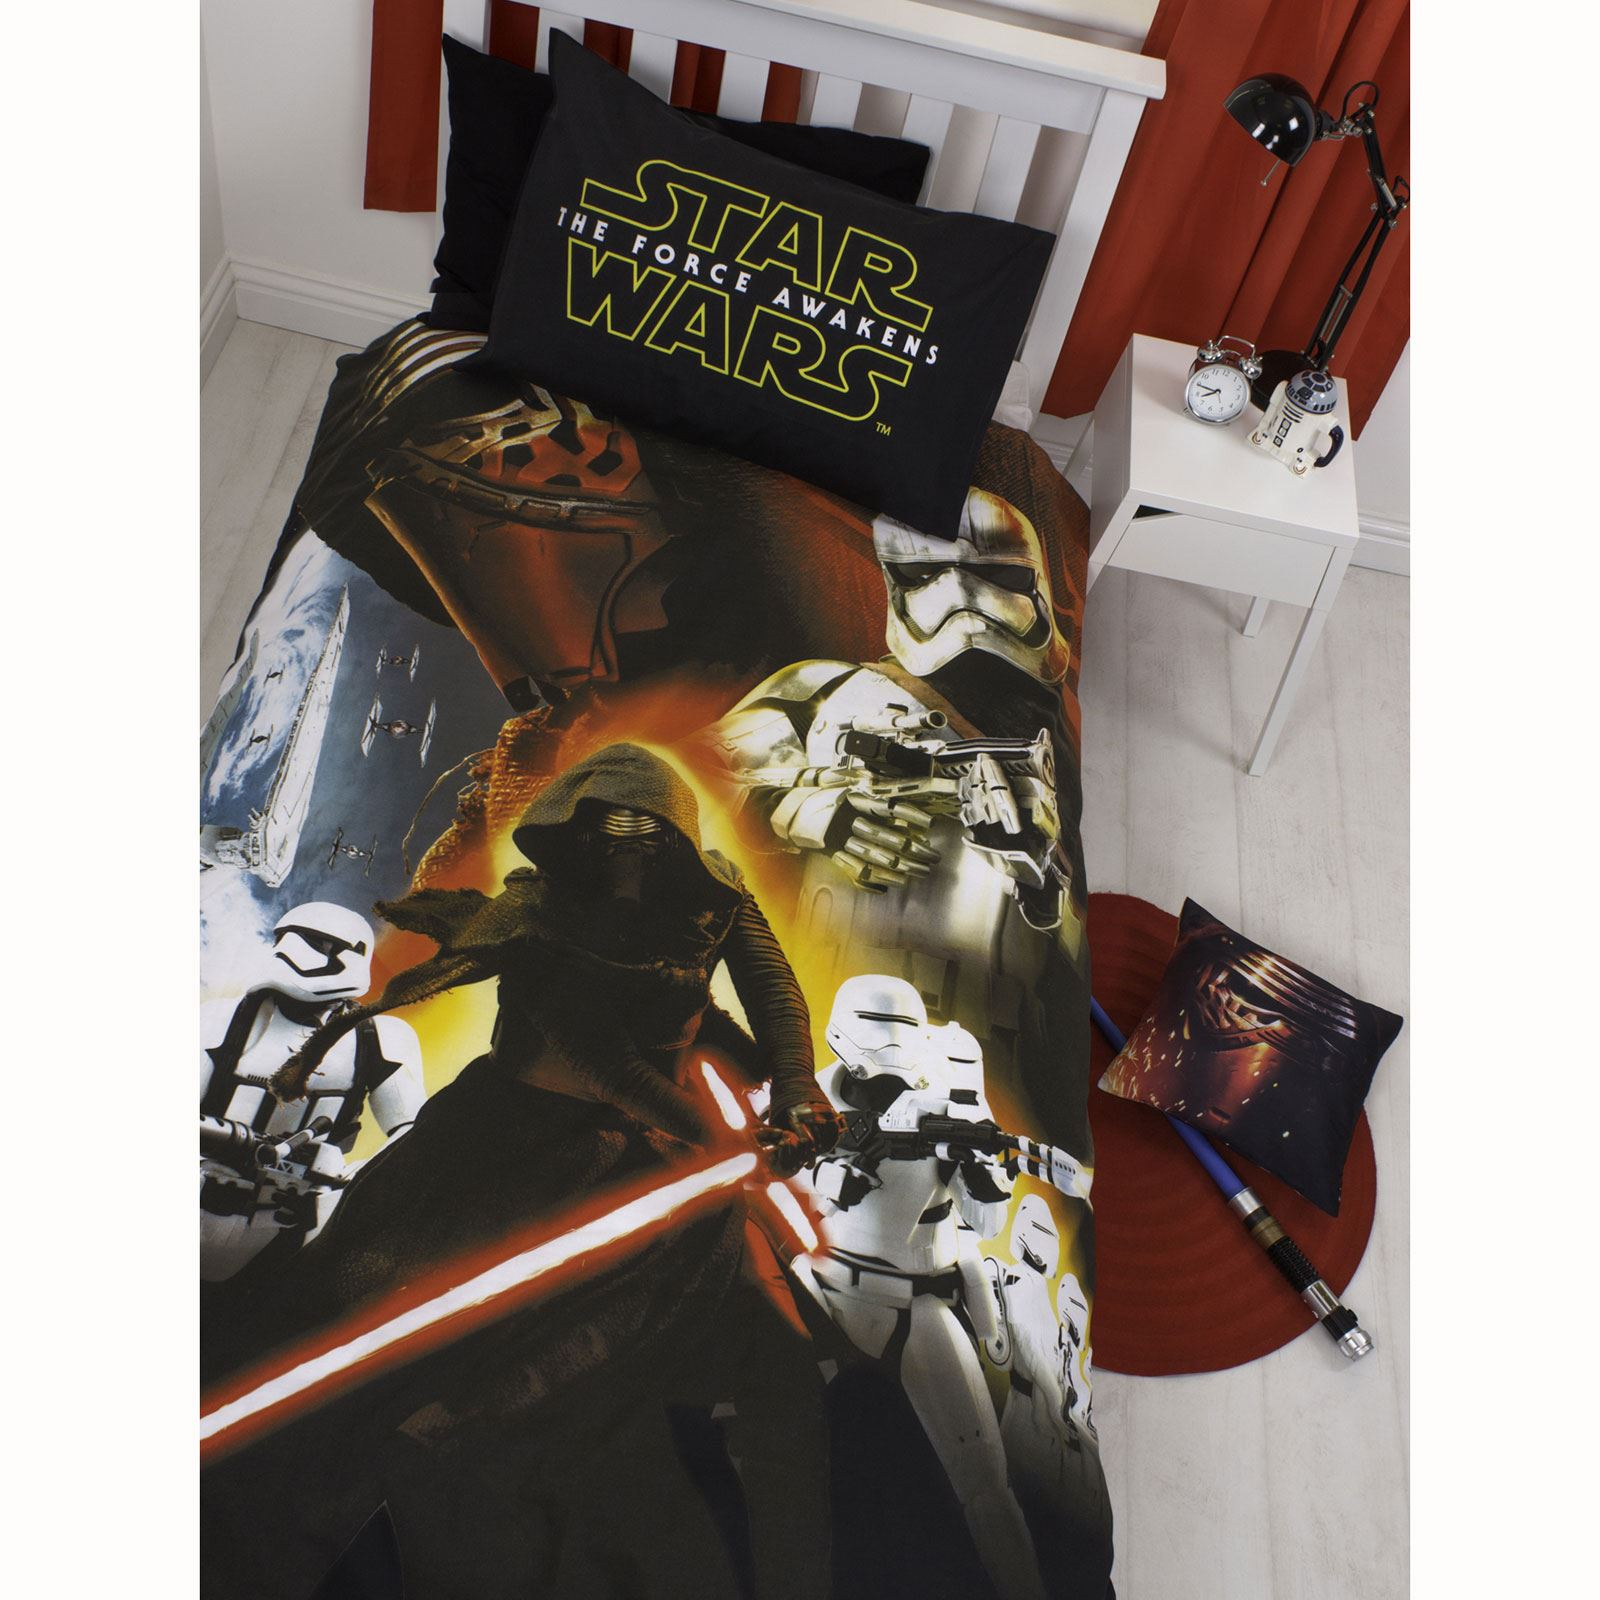 star wars episode vii wecken einzel bettw sche 1 designs kraft erwacht ebay. Black Bedroom Furniture Sets. Home Design Ideas